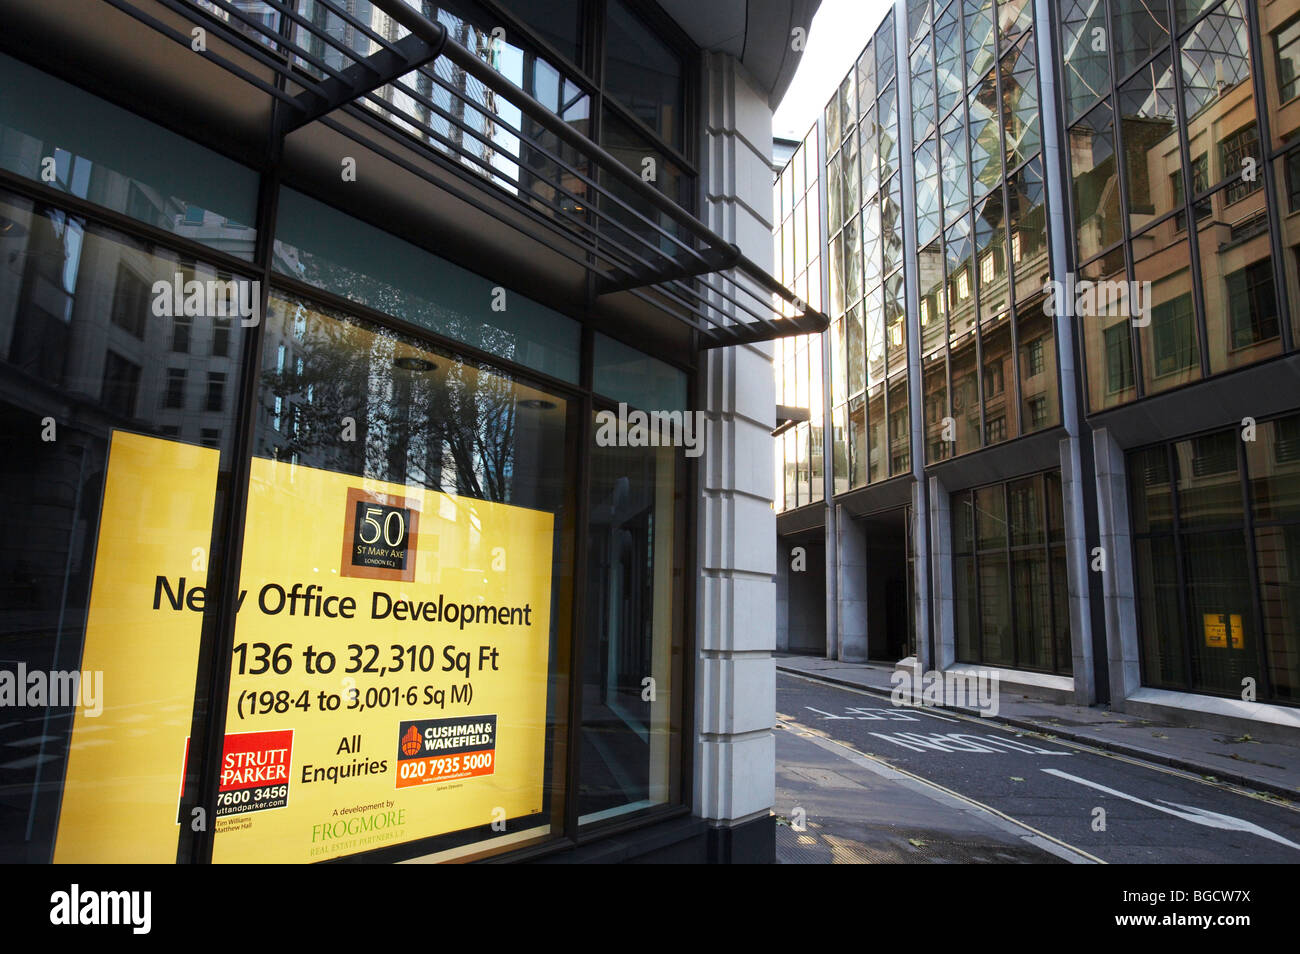 office space letting for rent  to let in financial district downtown central london england uk architecture - Stock Image